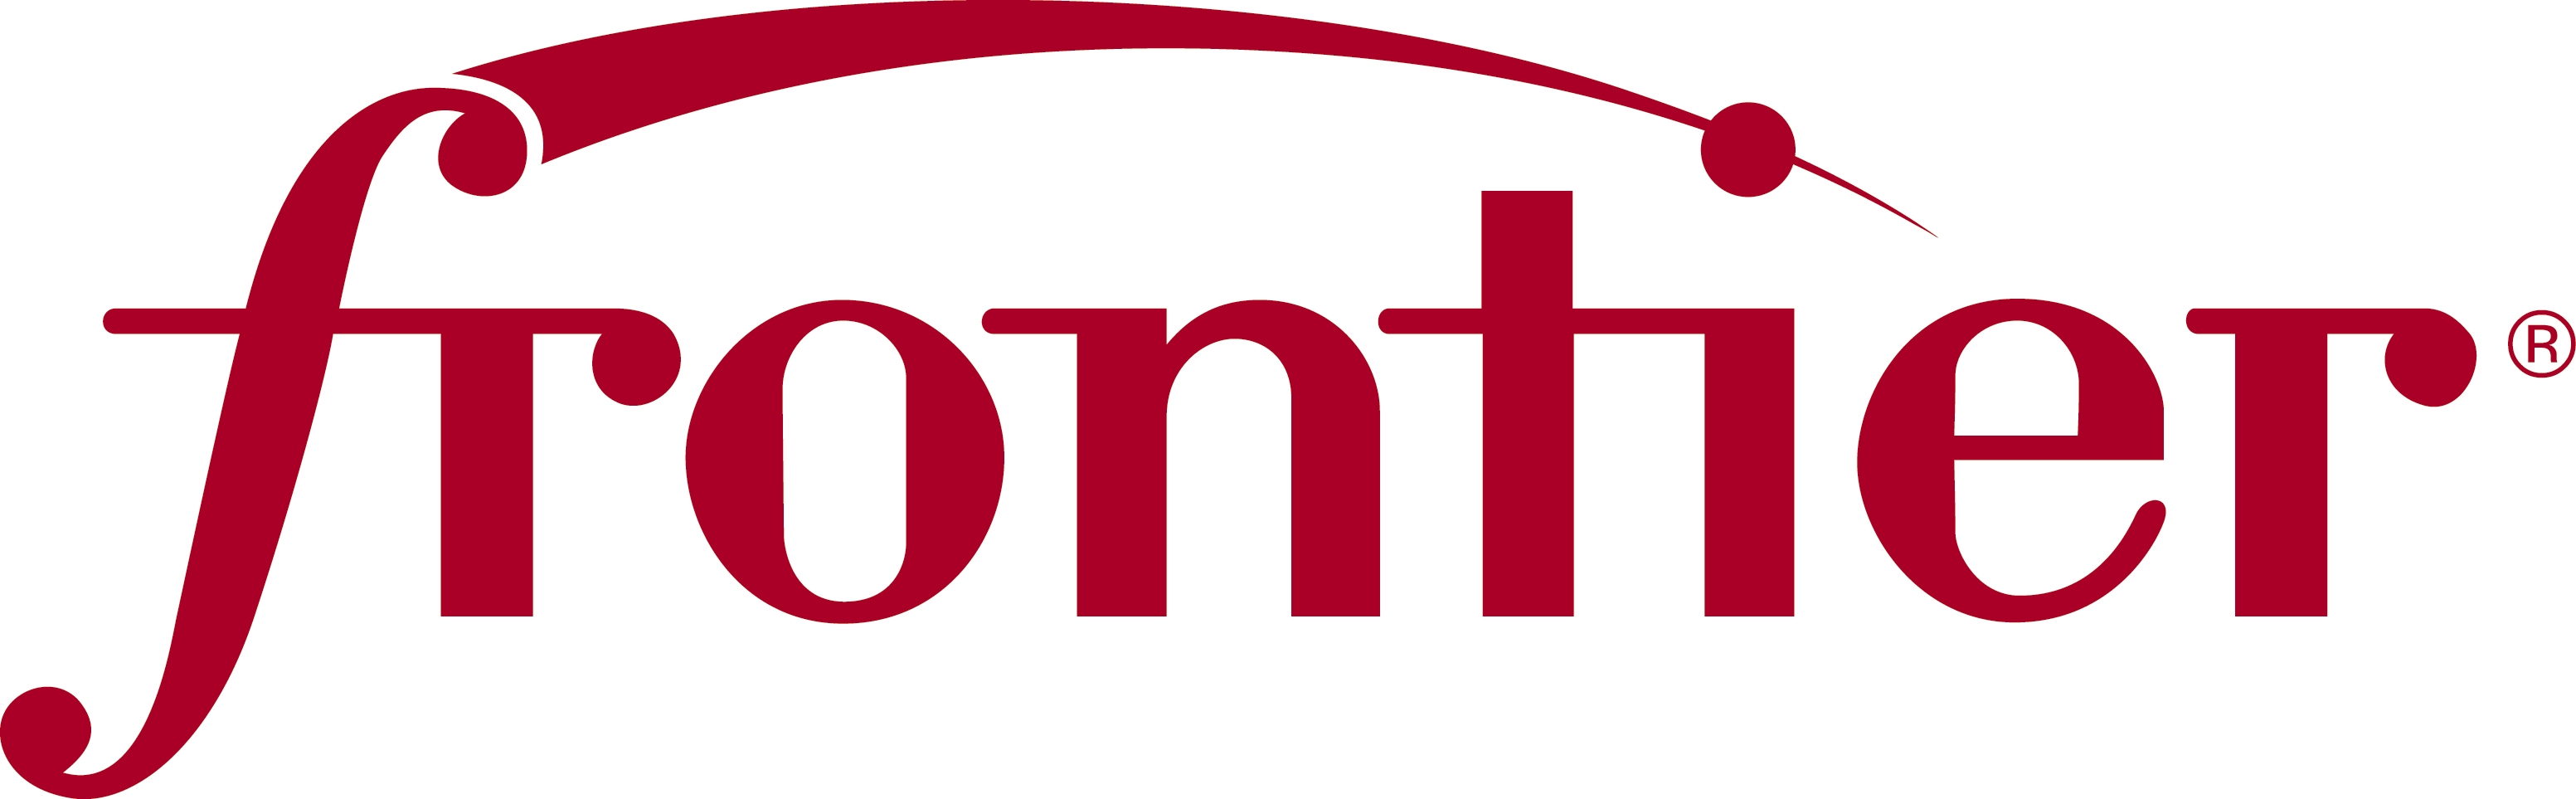 Frontier Communications Expands Operations In Horry County